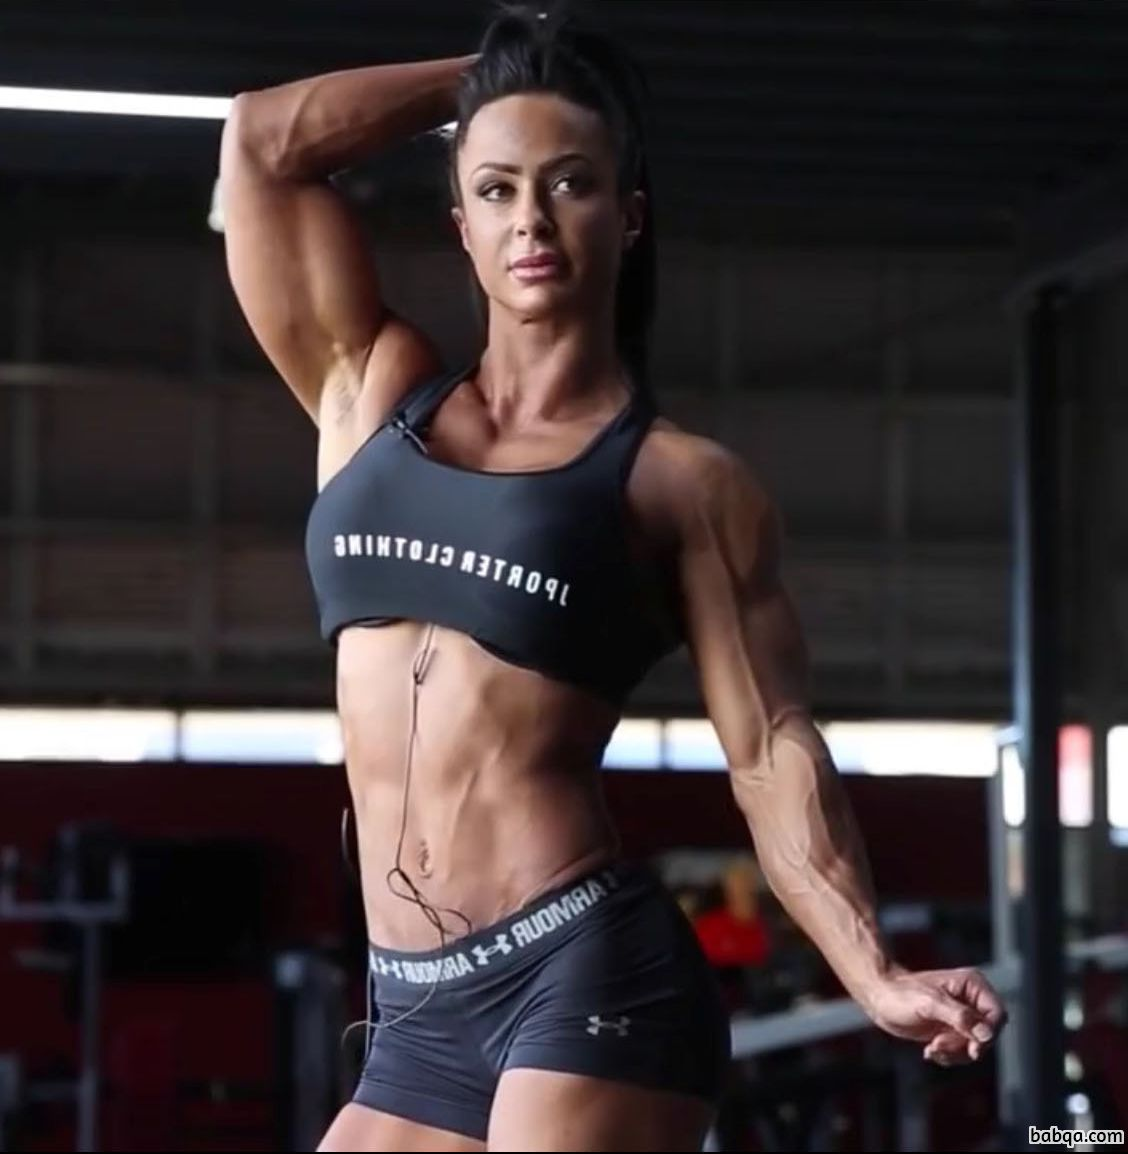 hottest chick with fitness body and toned arms pic from g+